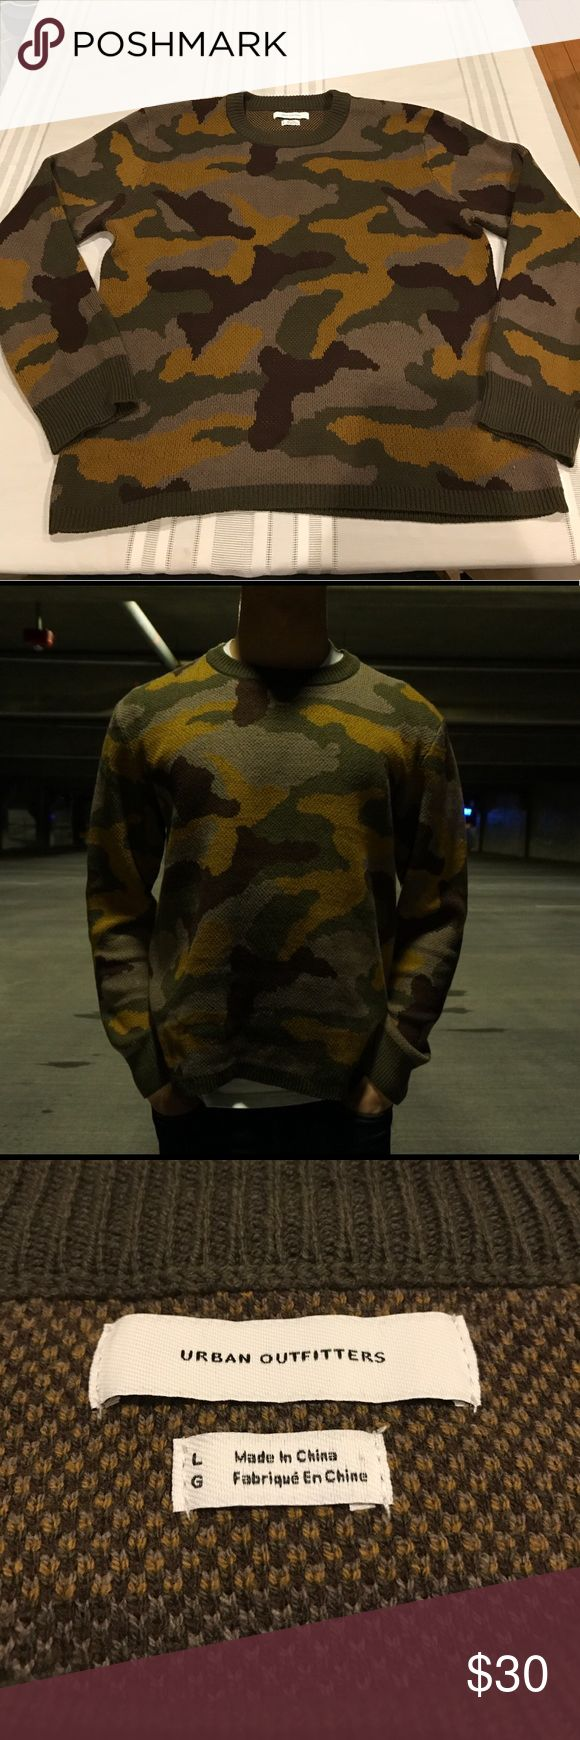 URBAN OUTFITTERS CAMO CREWNECK Once worn Urban Outfitters camo crewneck. Size L in US Men's. No rips, tears, stains. TTS. Urban Outfitters Sweaters Crewneck